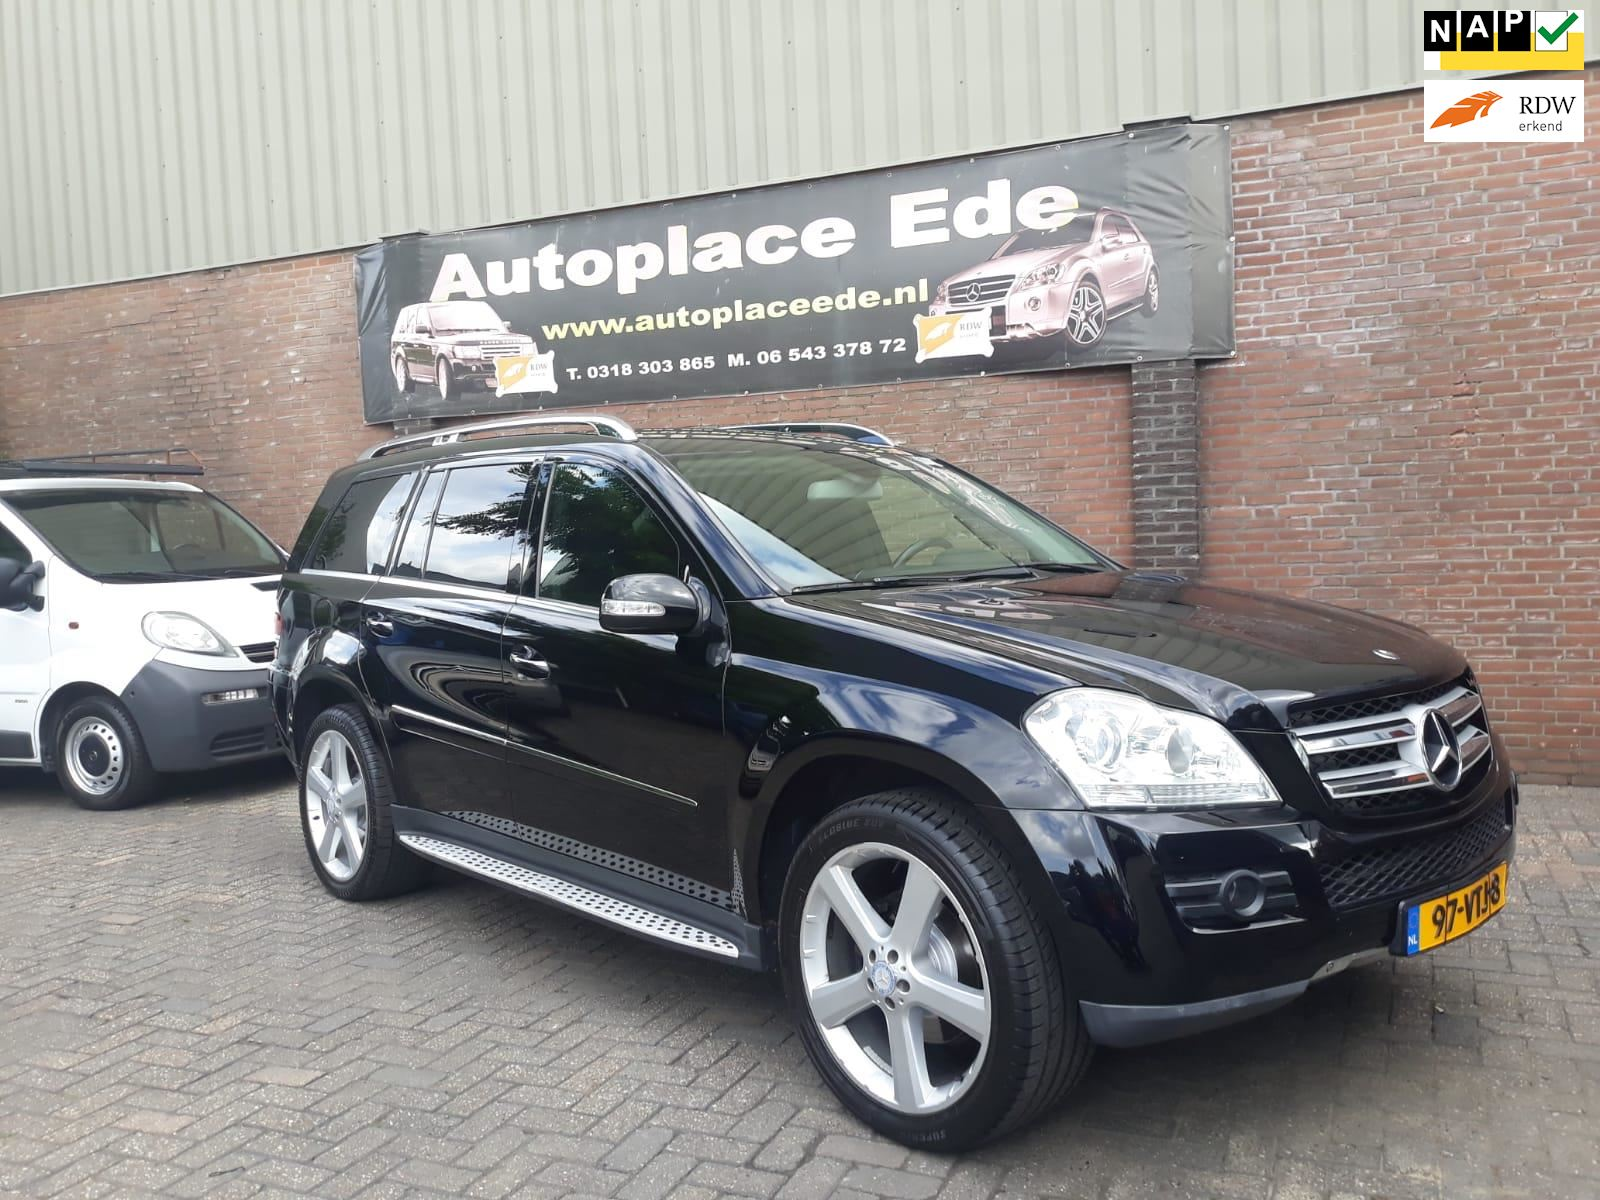 Mercedes-Benz GL 320 CDI 4MATIC occasion - Autoplace Ede